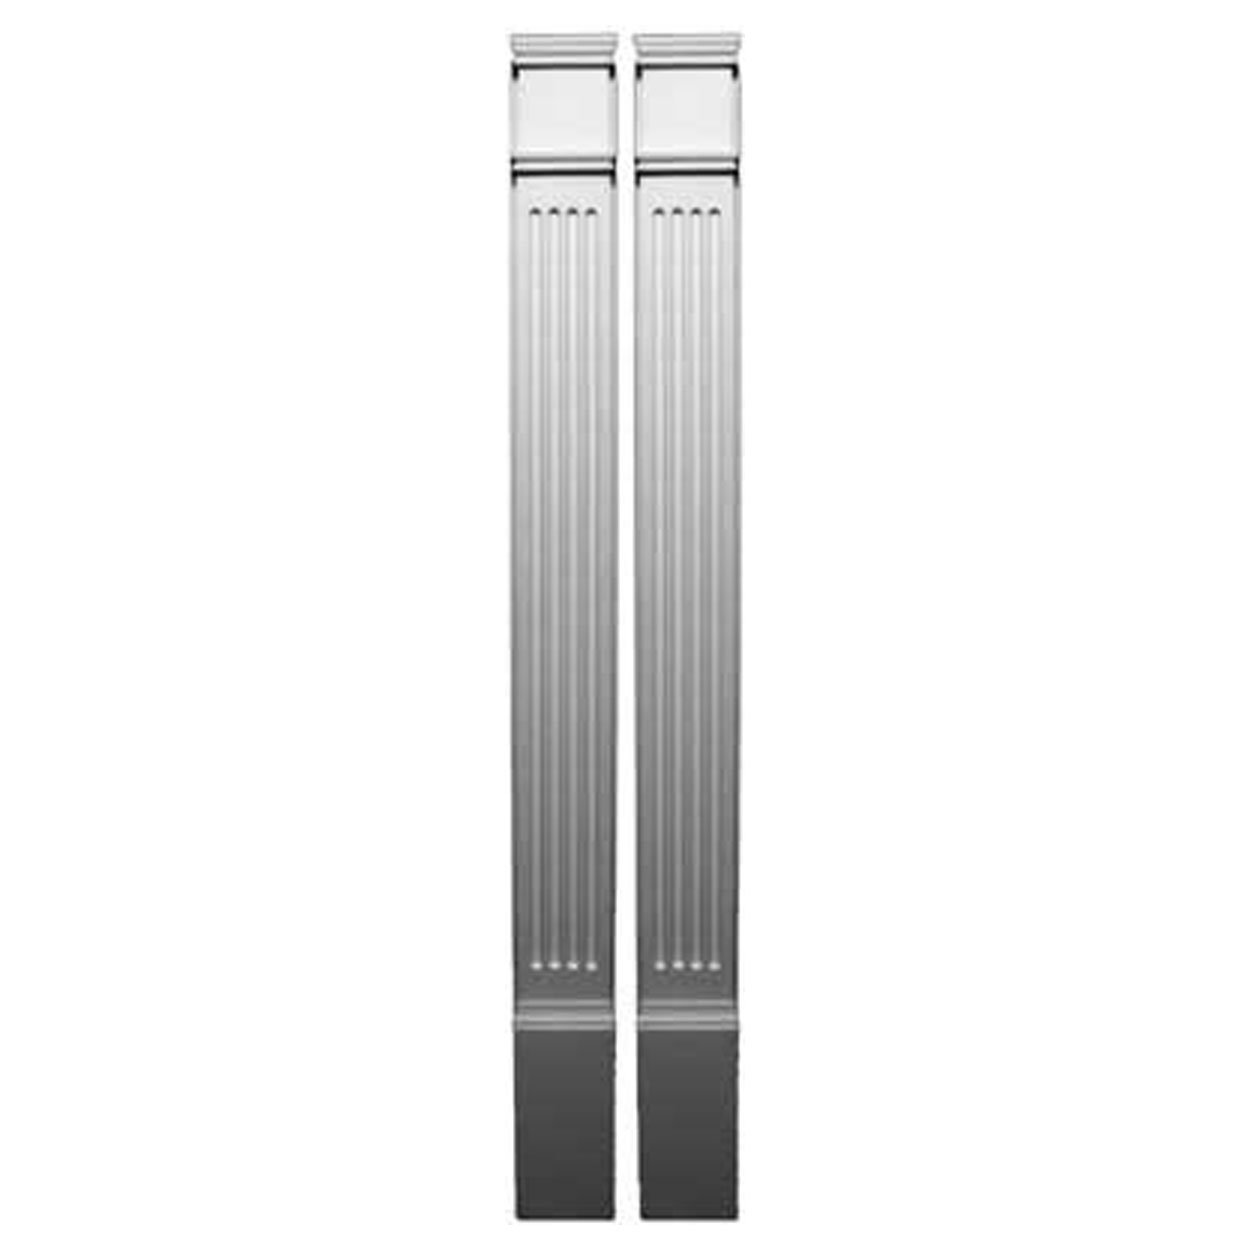 Fypon PIL4X83 4 1/2''W x 82 3/4''H x 1 1/8''P Fluted Pilaster, Moulded with Plinth Block (Set of 2), 1 Piece